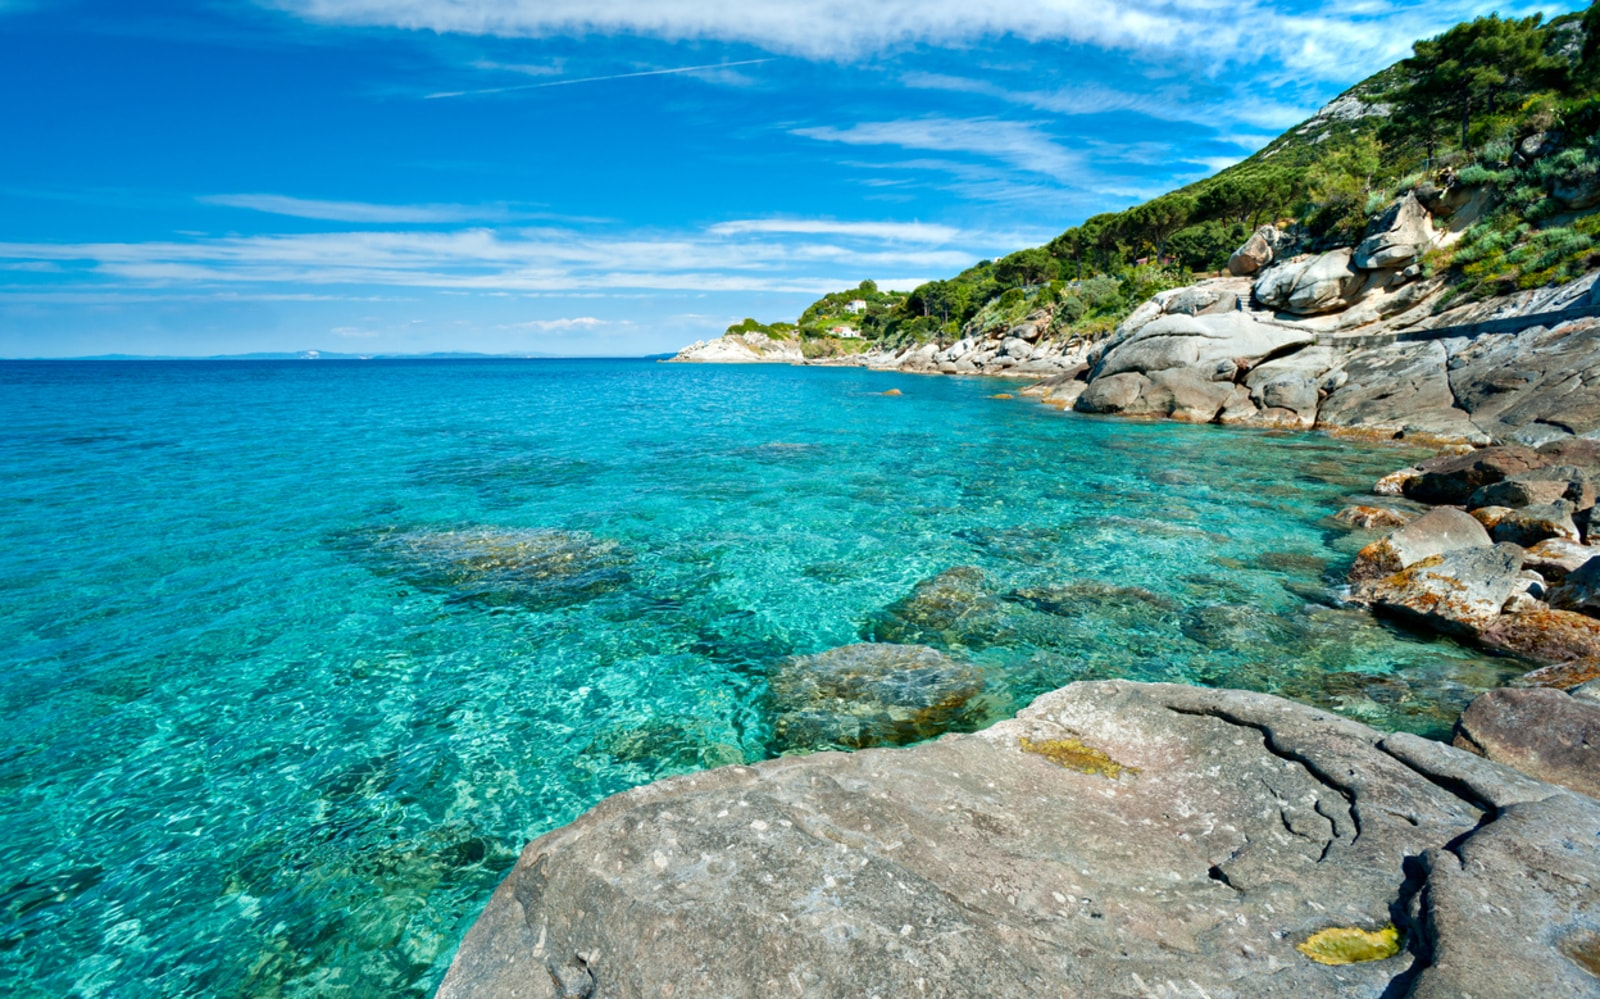 Blue flags, Italy has 385 excellent beaches